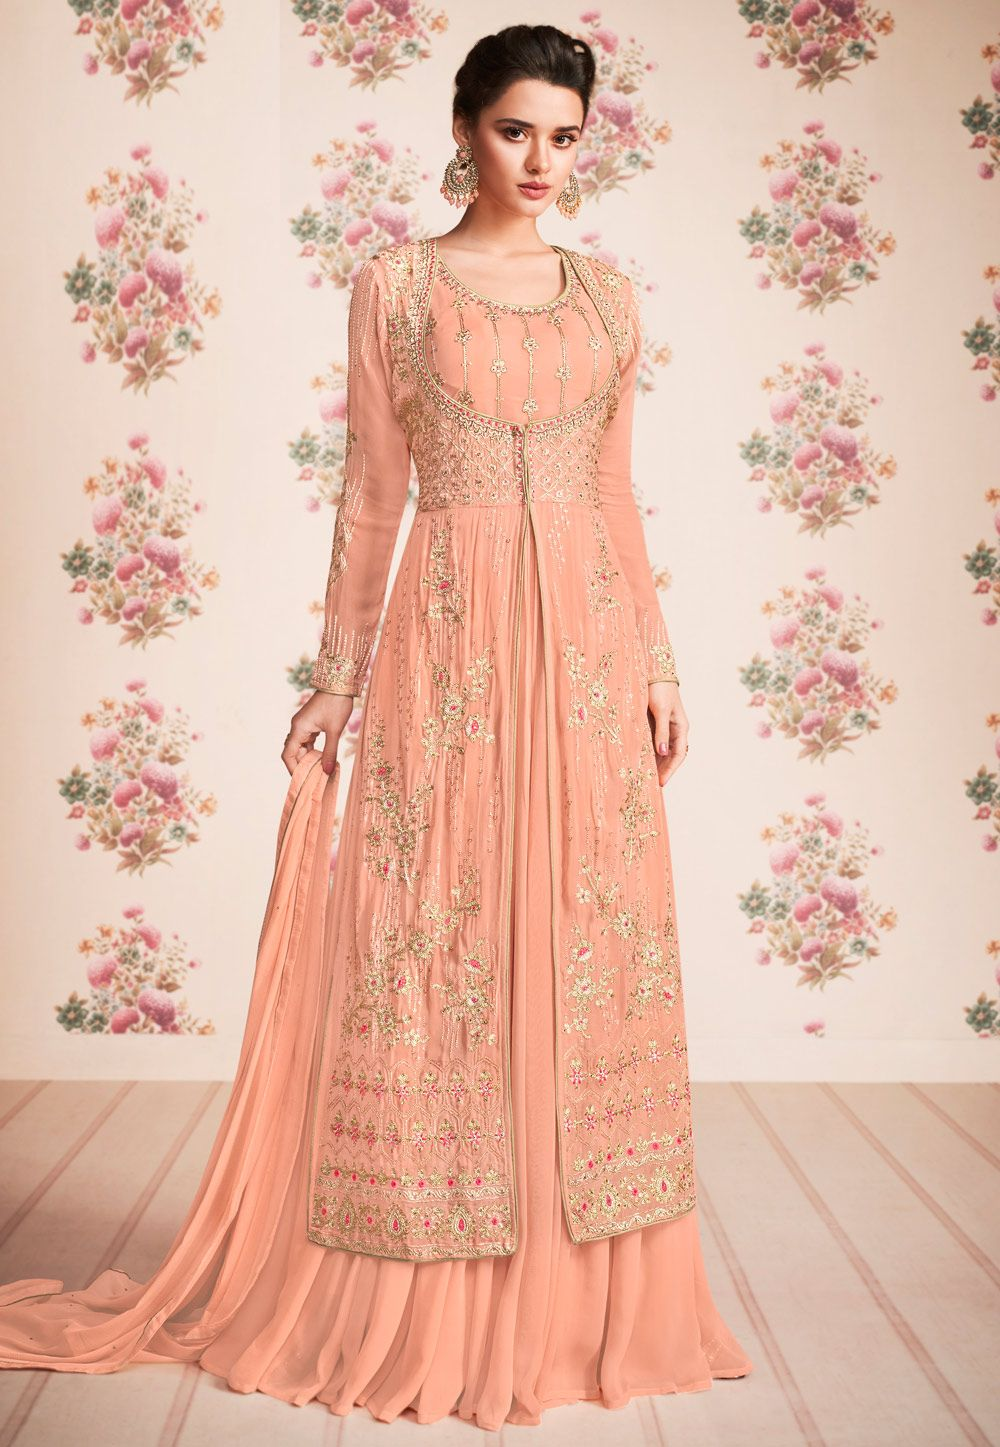 a91b1e624c Buy Peach Georgette Anarkali Suit With Jacket 162495 online at lowest price  from huge collection of salwar kameez at Indianclothstore.com.